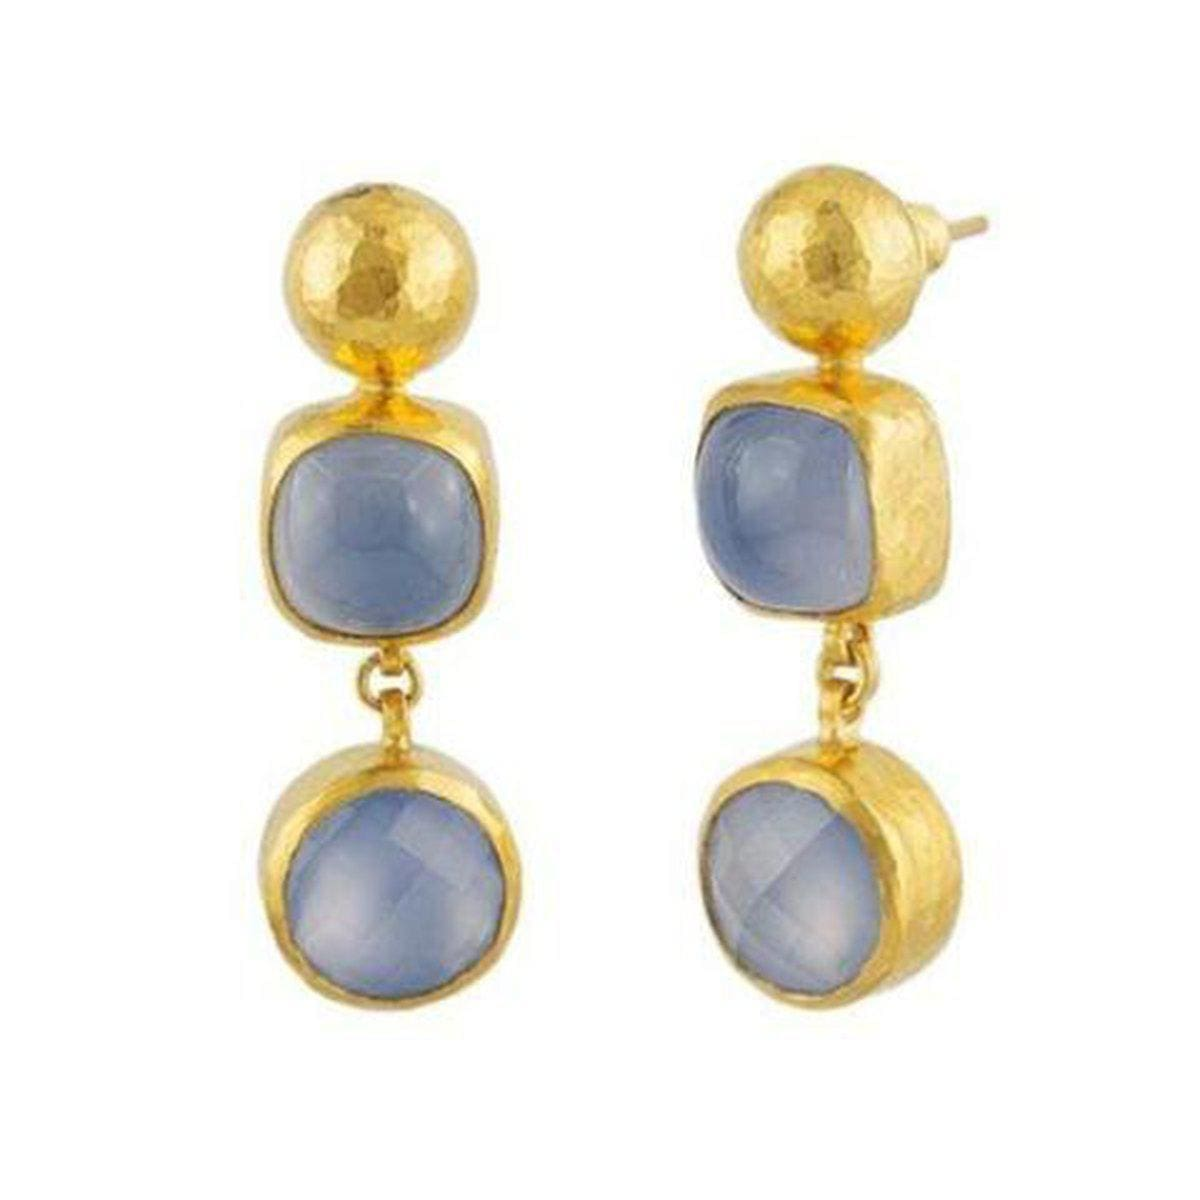 Amulet Hue 24K Gold Chalcedony Earrings - E-U20058-CA-GURHAN-Renee Taylor Gallery